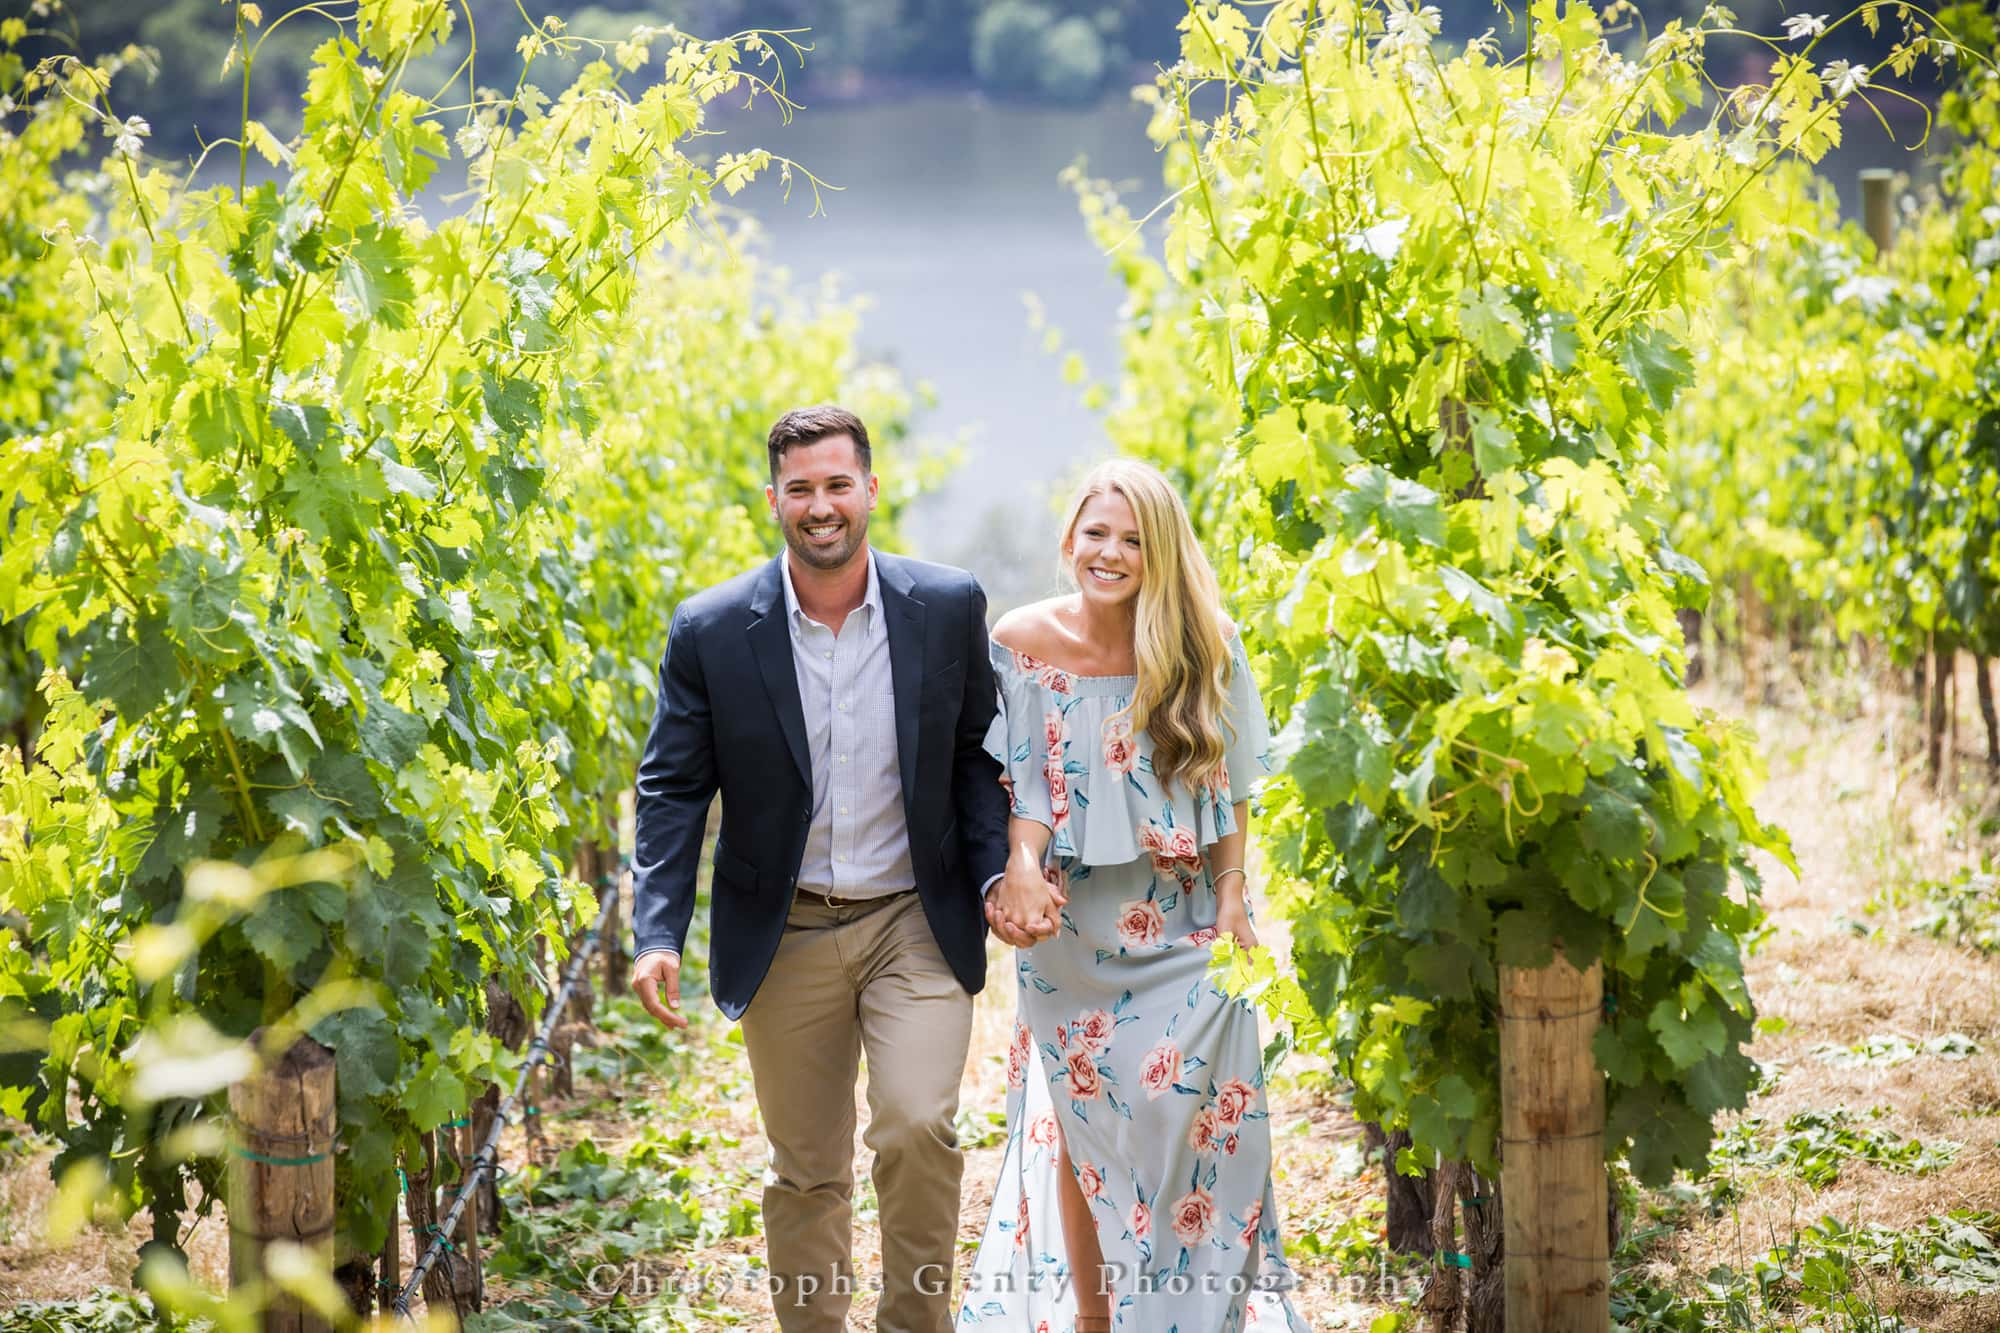 Marriage Proposal Photography in Napa -1007